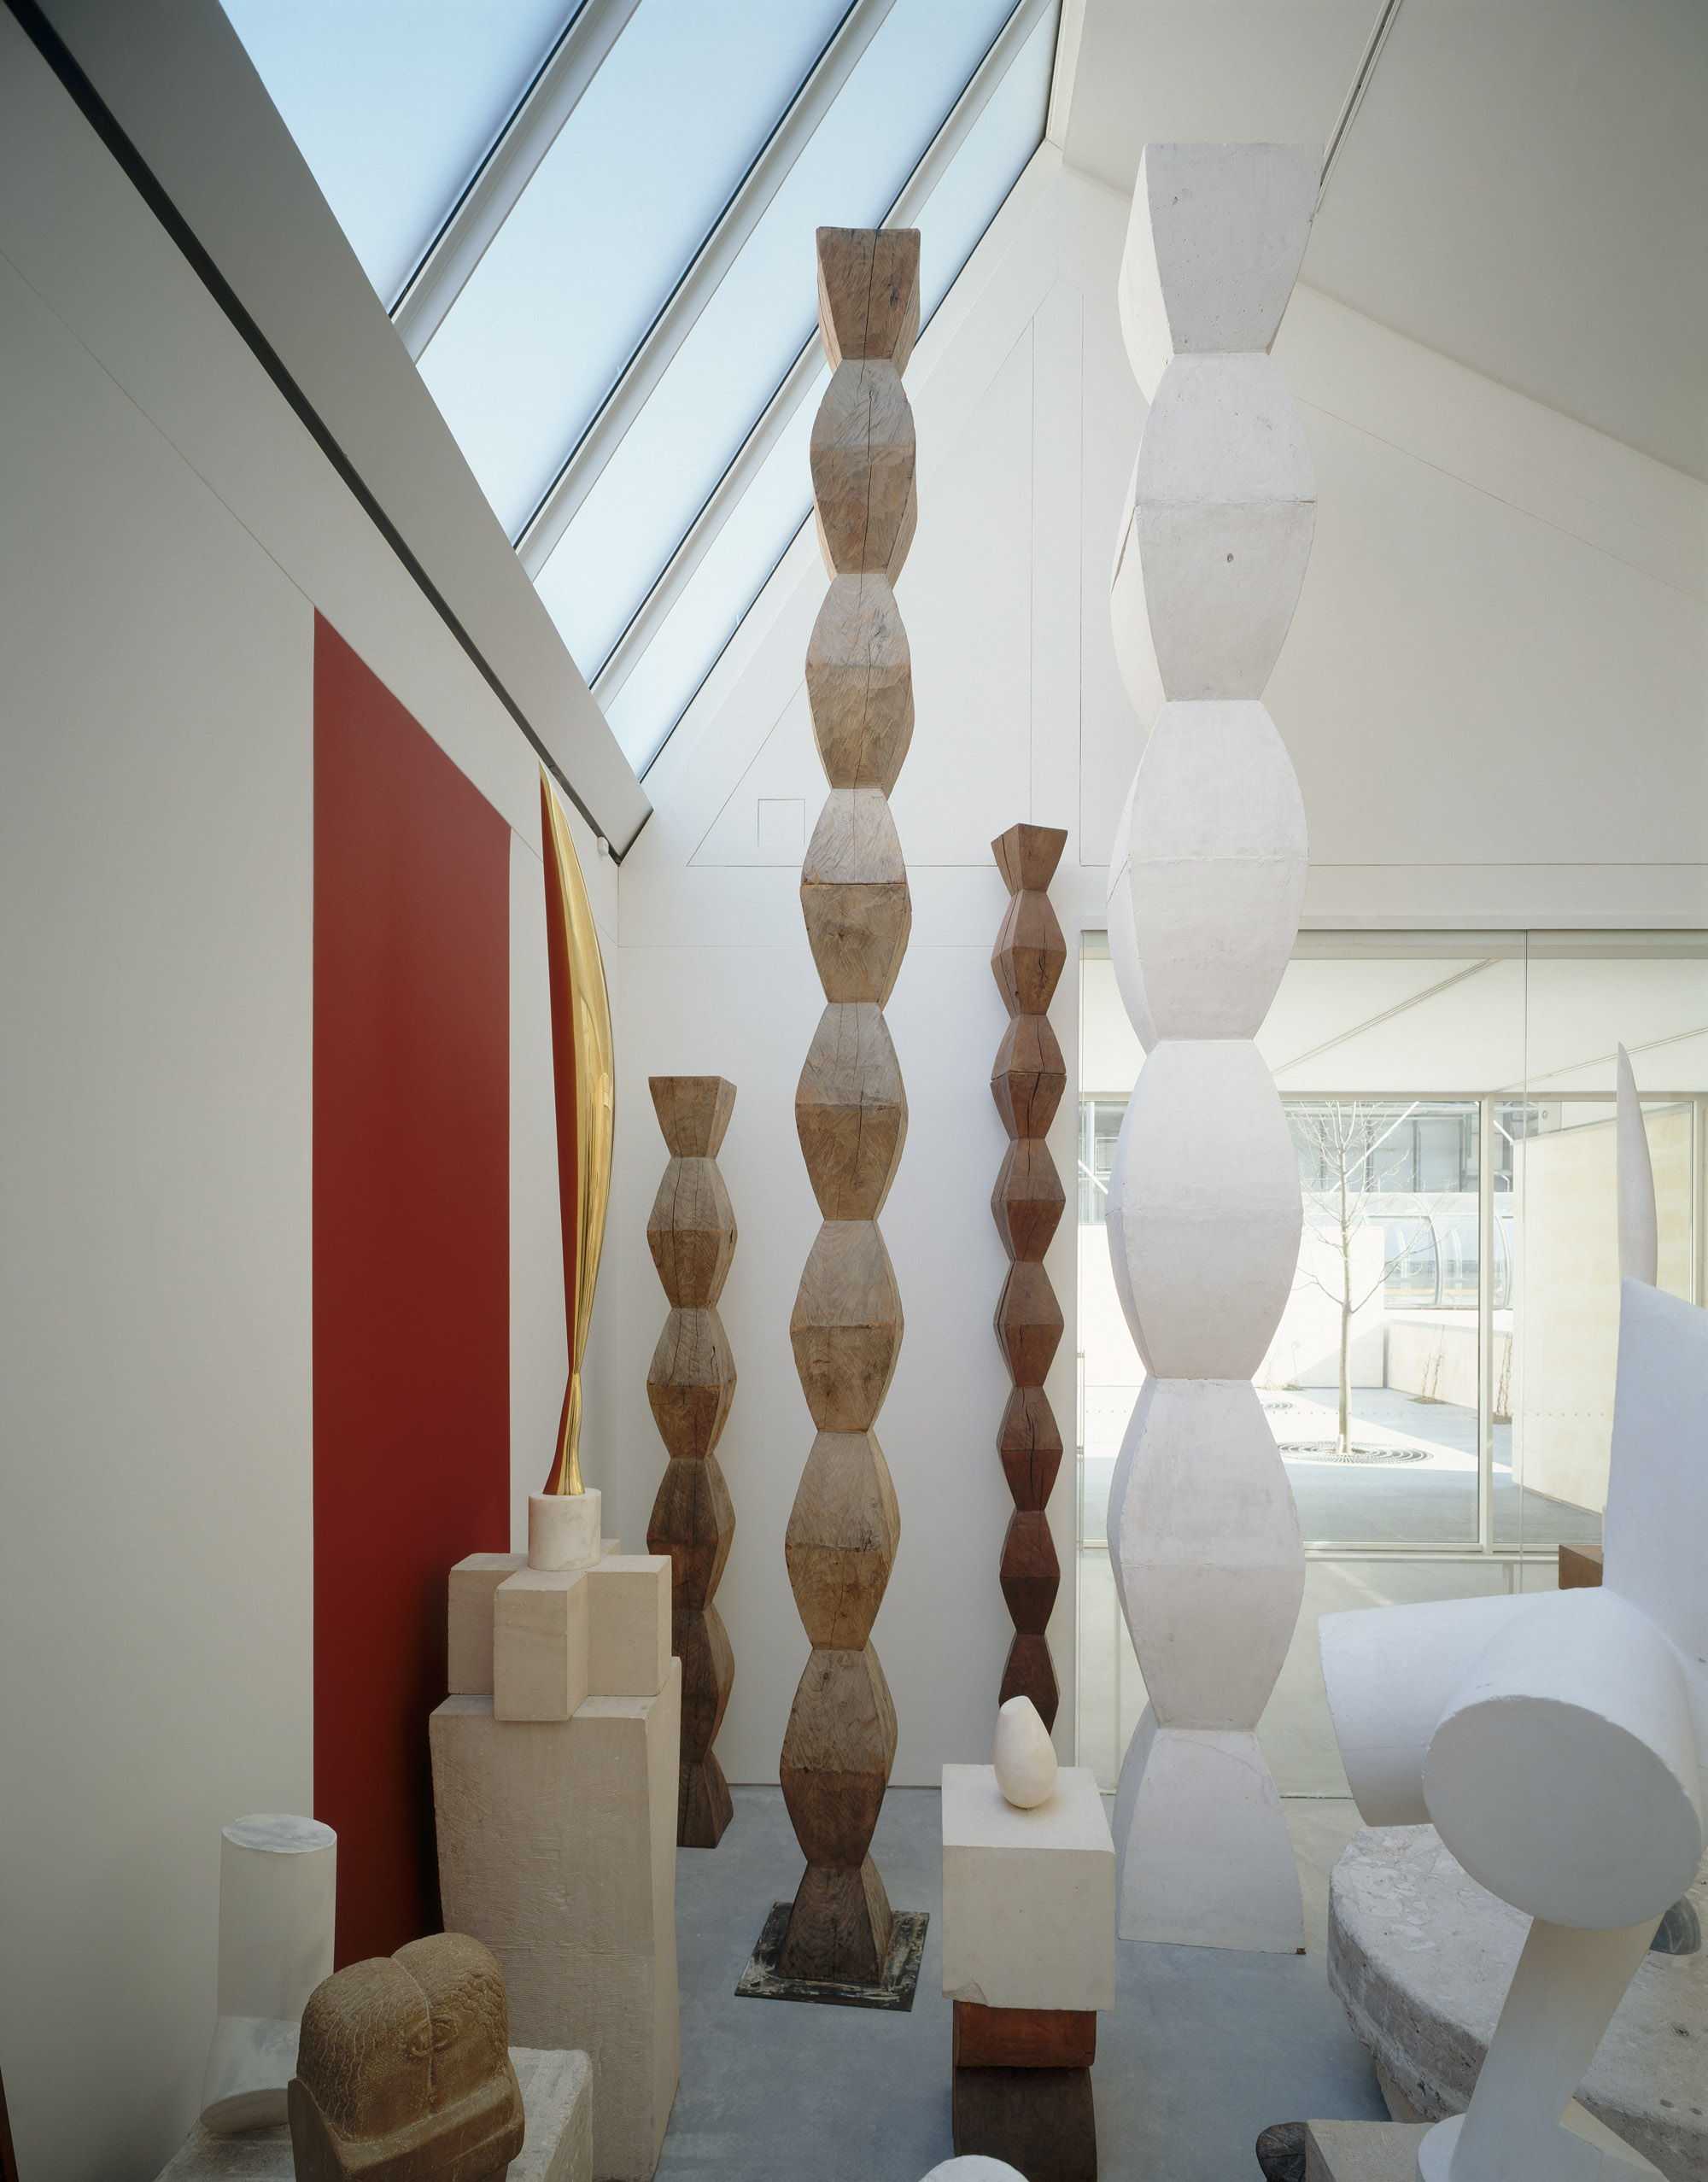 Constantin-BRANCUSI-La-Colonne-sans-fin-III-avant-1928-Collection-Centre-Pompidou┬®-Succession-Brancusi-All-rights-reserved-Adagp-2017